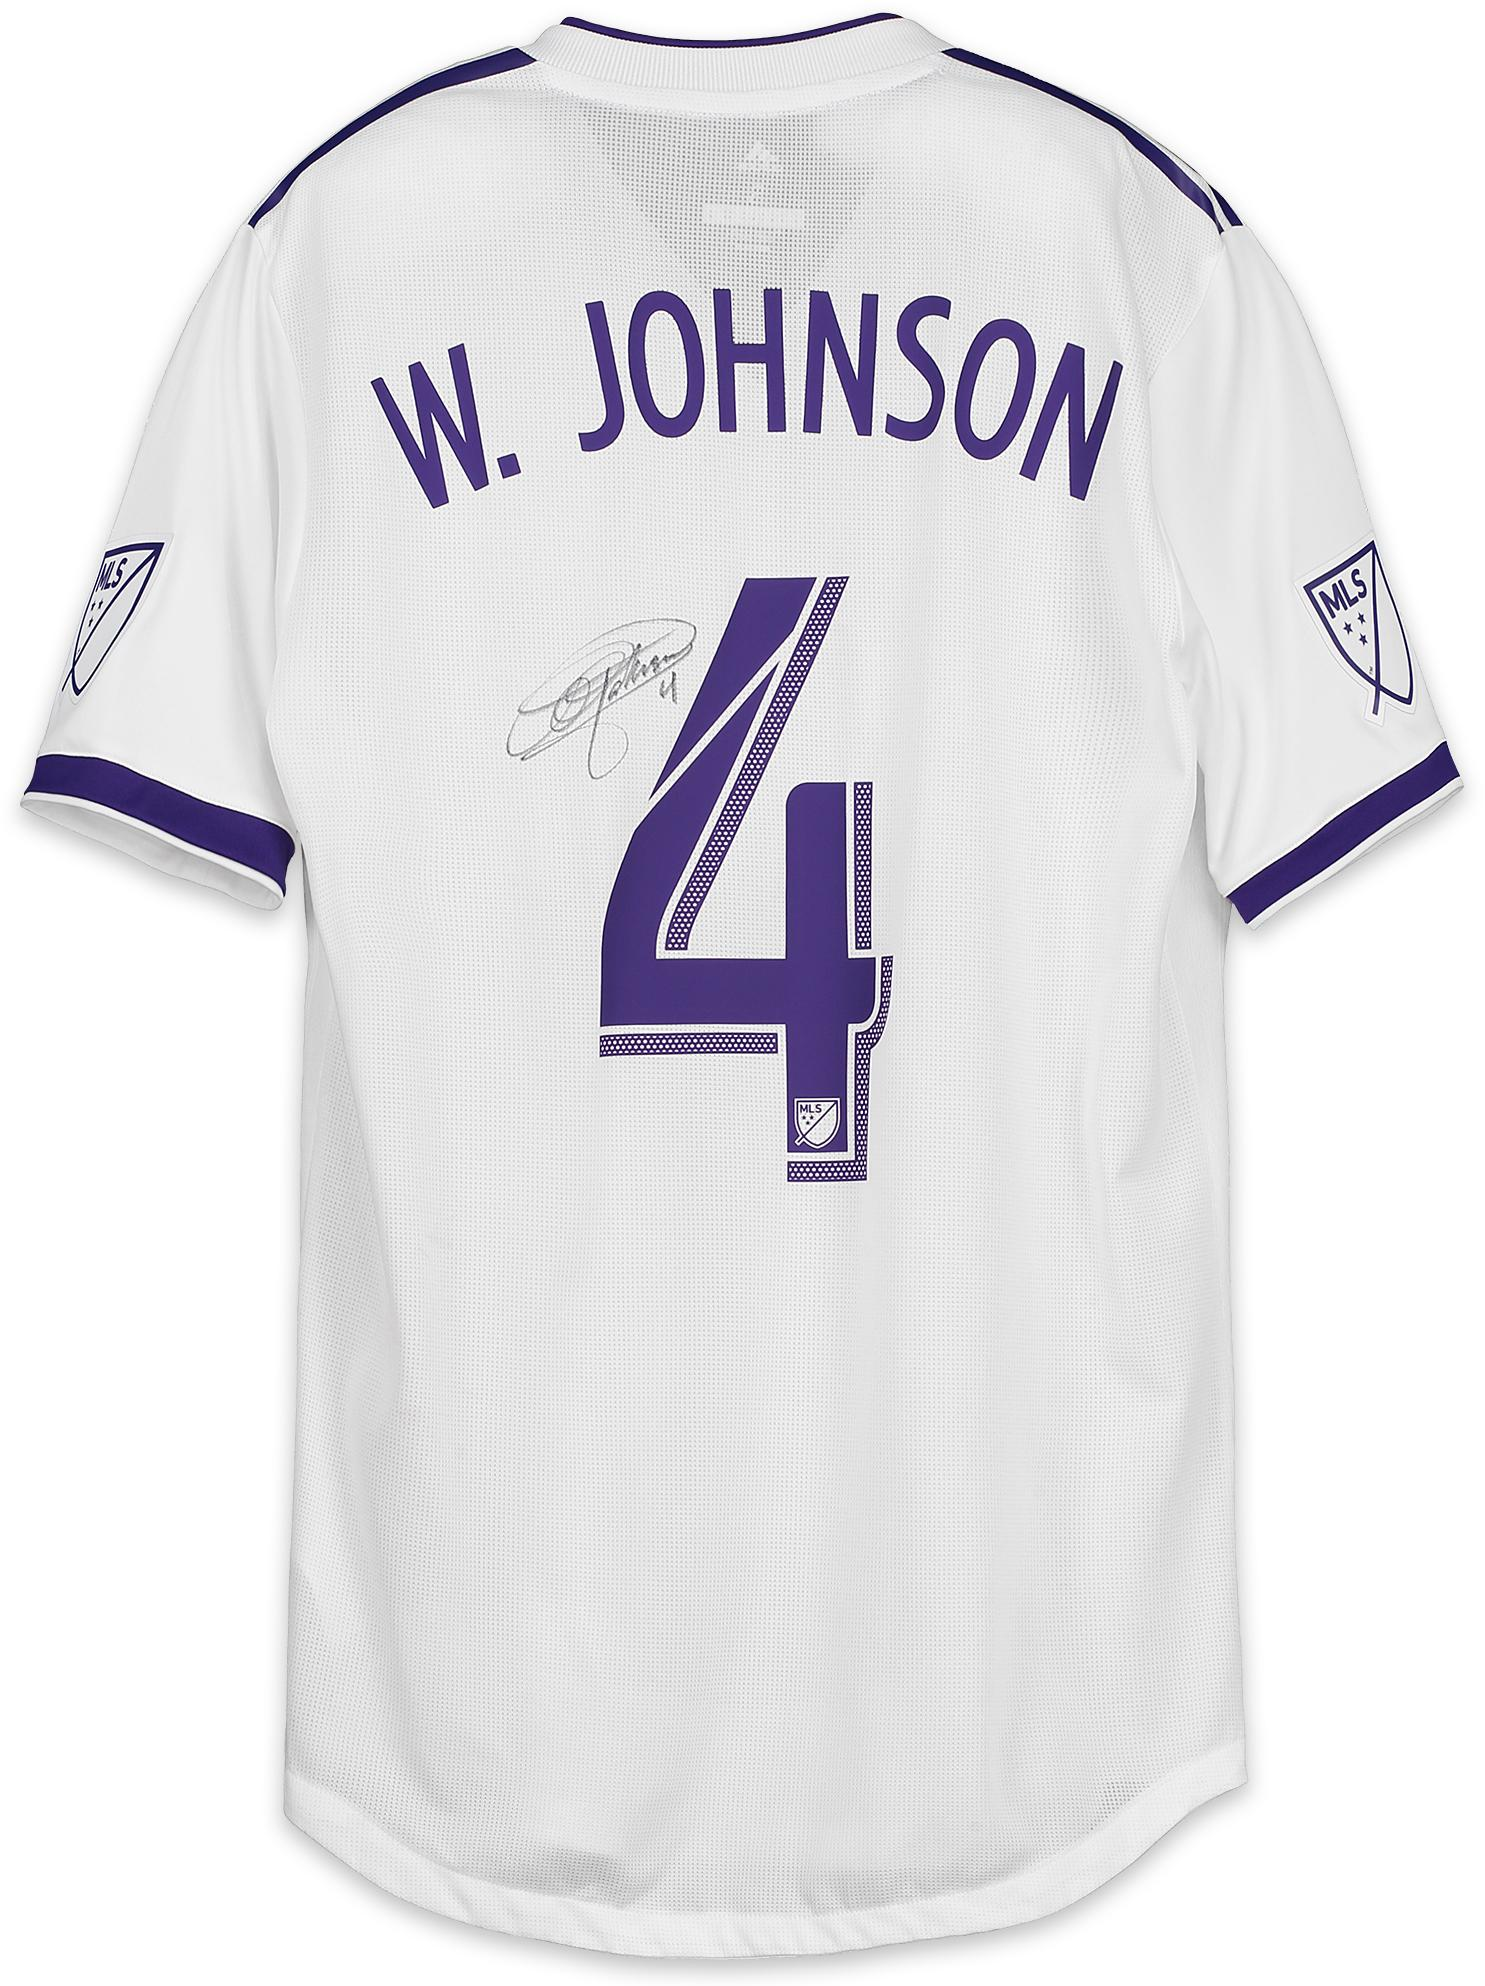 new product 8bc41 05afb Will Johnson Orlando City SC Autographed Match-Used White #4 Jersey vs.  Sporting Kansas City on September 8, 2018 - Fanatics Authentic Certified